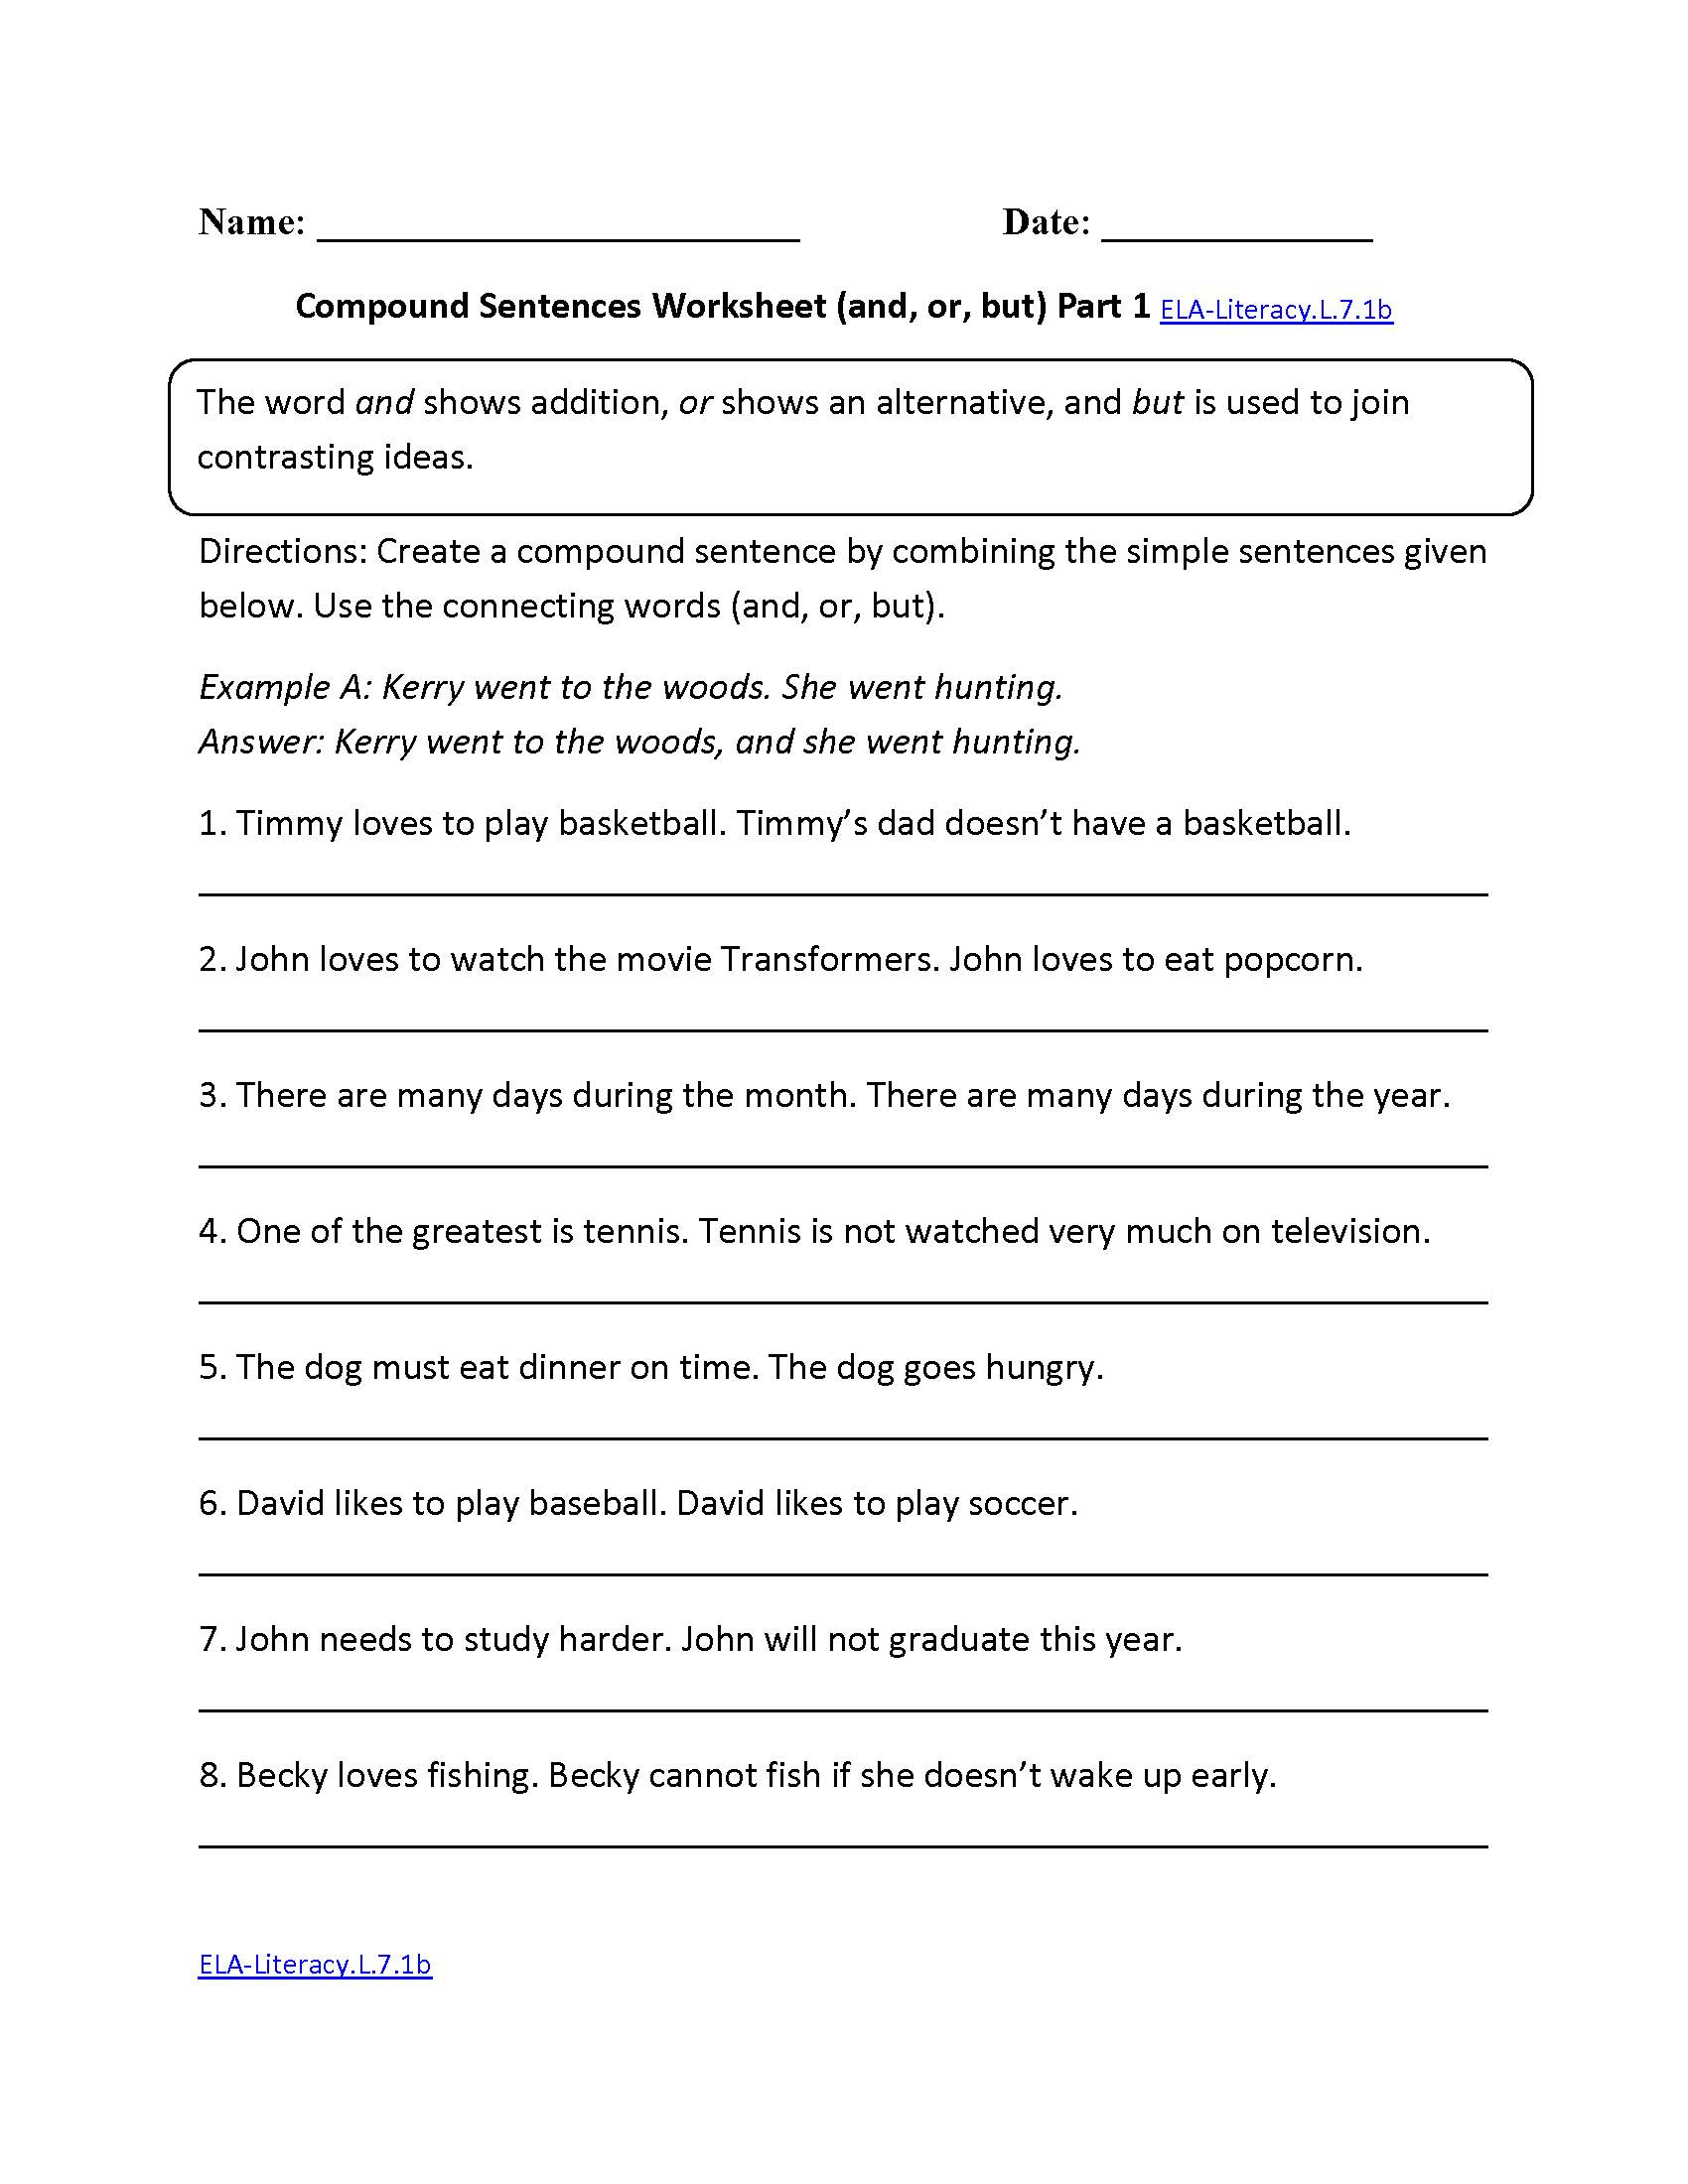 Worksheets Combining Sentences Worksheet compound sentences worksheet ela literacy l 7 1b language worksheet